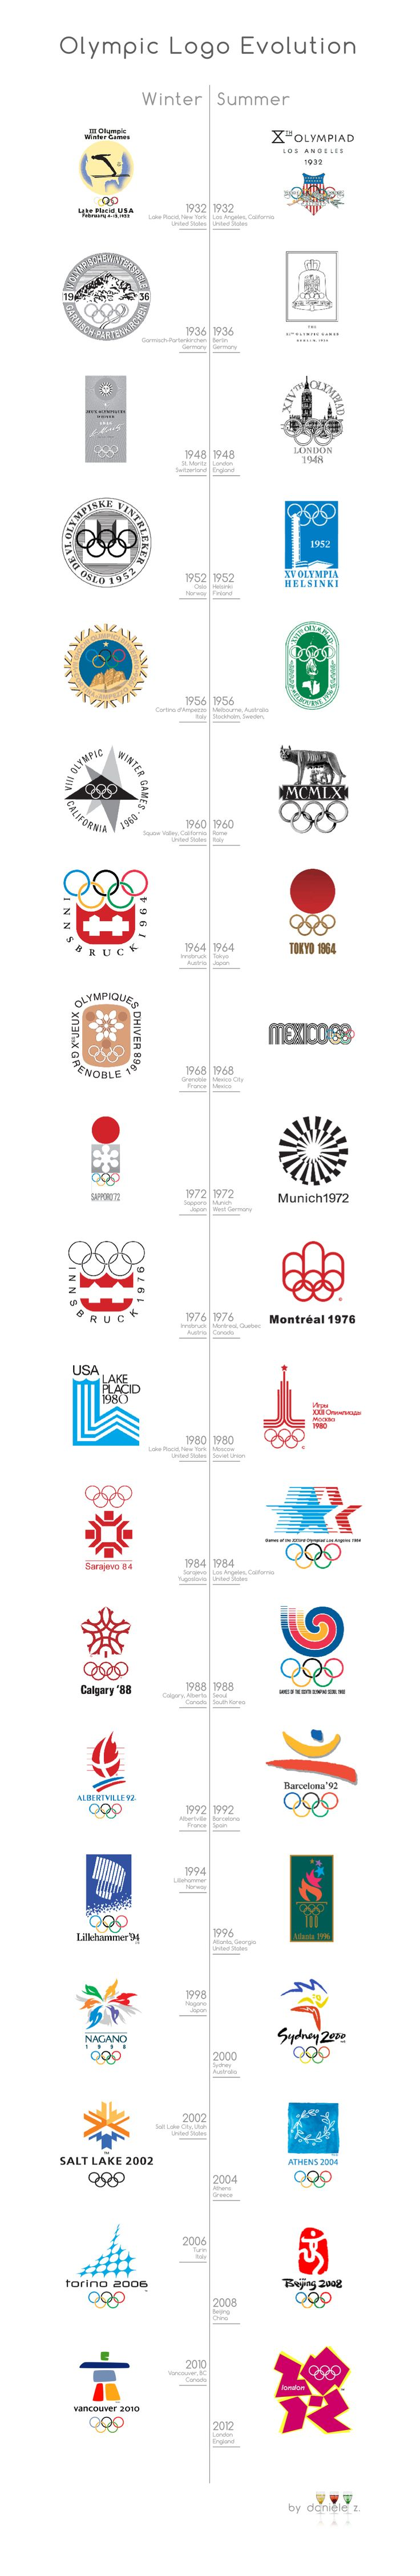 Olympic Logo Evolution #marketingsportowy #marketingwsporcie #muvmentmarketing